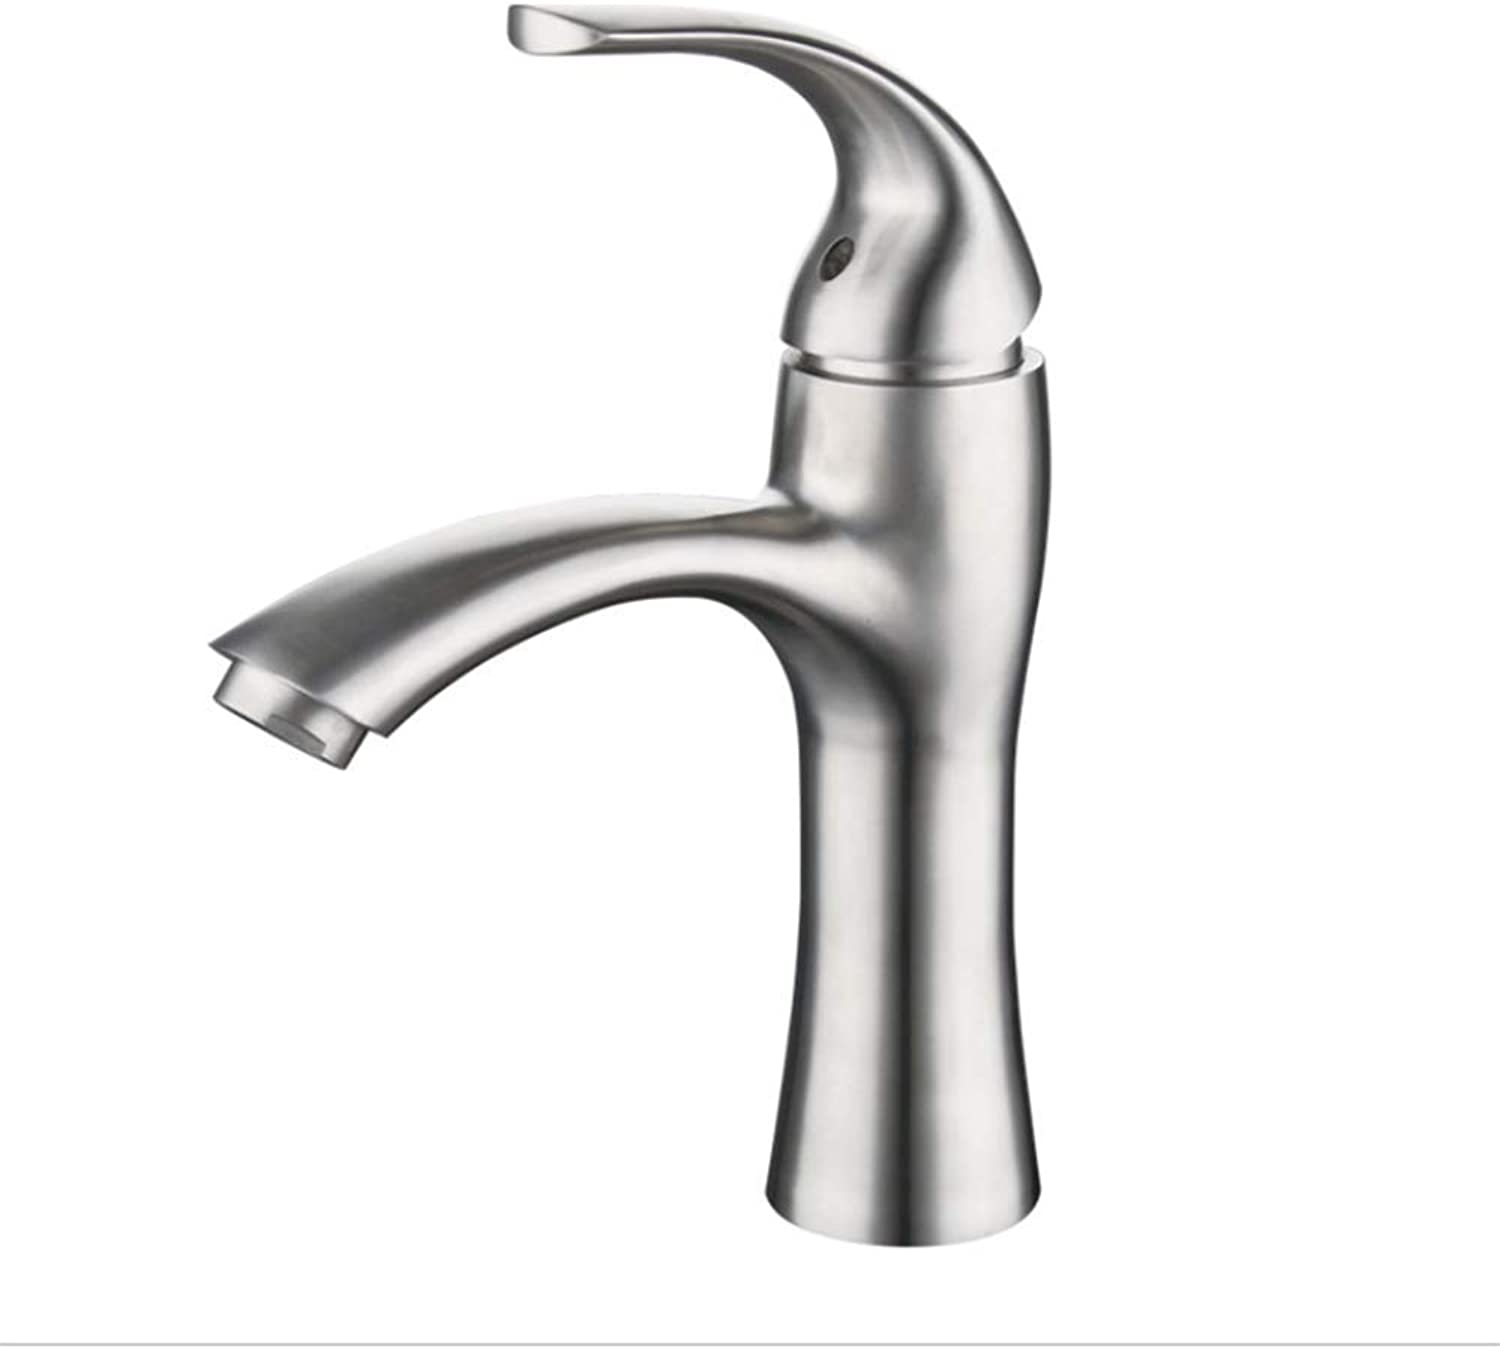 Basin Faucet304 Stainless Steel Wire Drawing Faucet Basin Lavatory